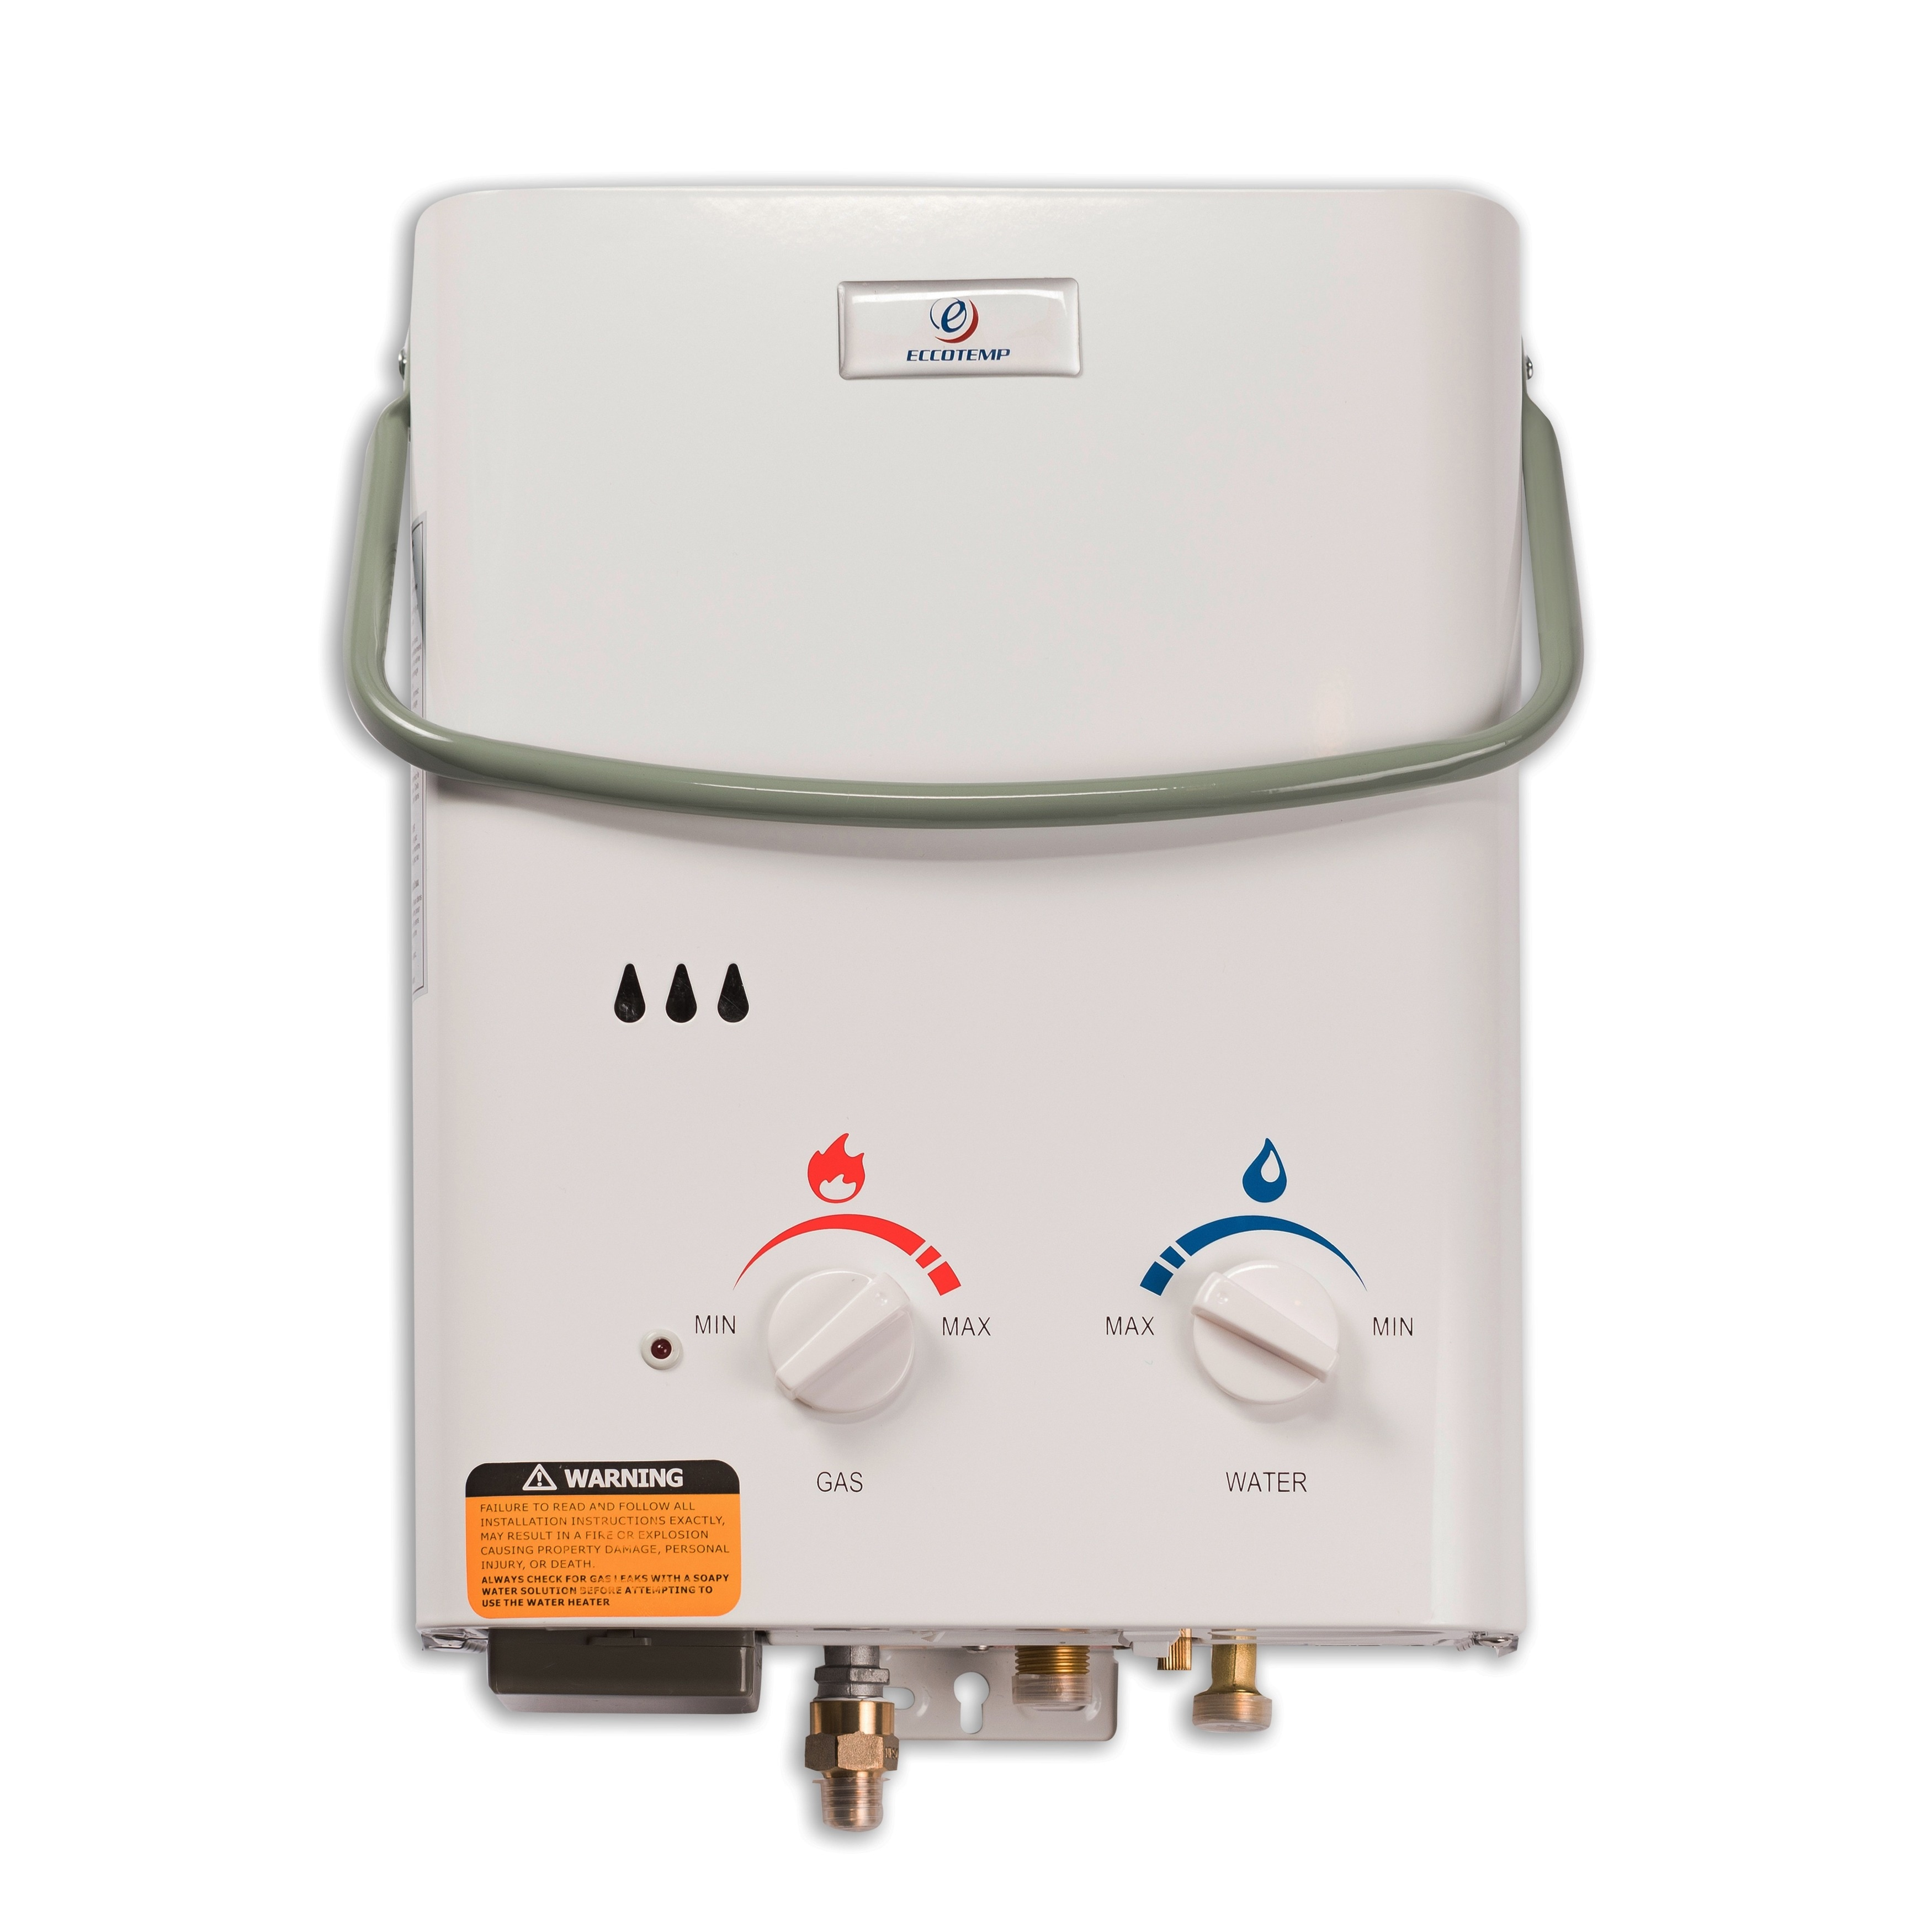 Eccotemp L5 Outdoor Portable Tankless Water Heater (Eccot...